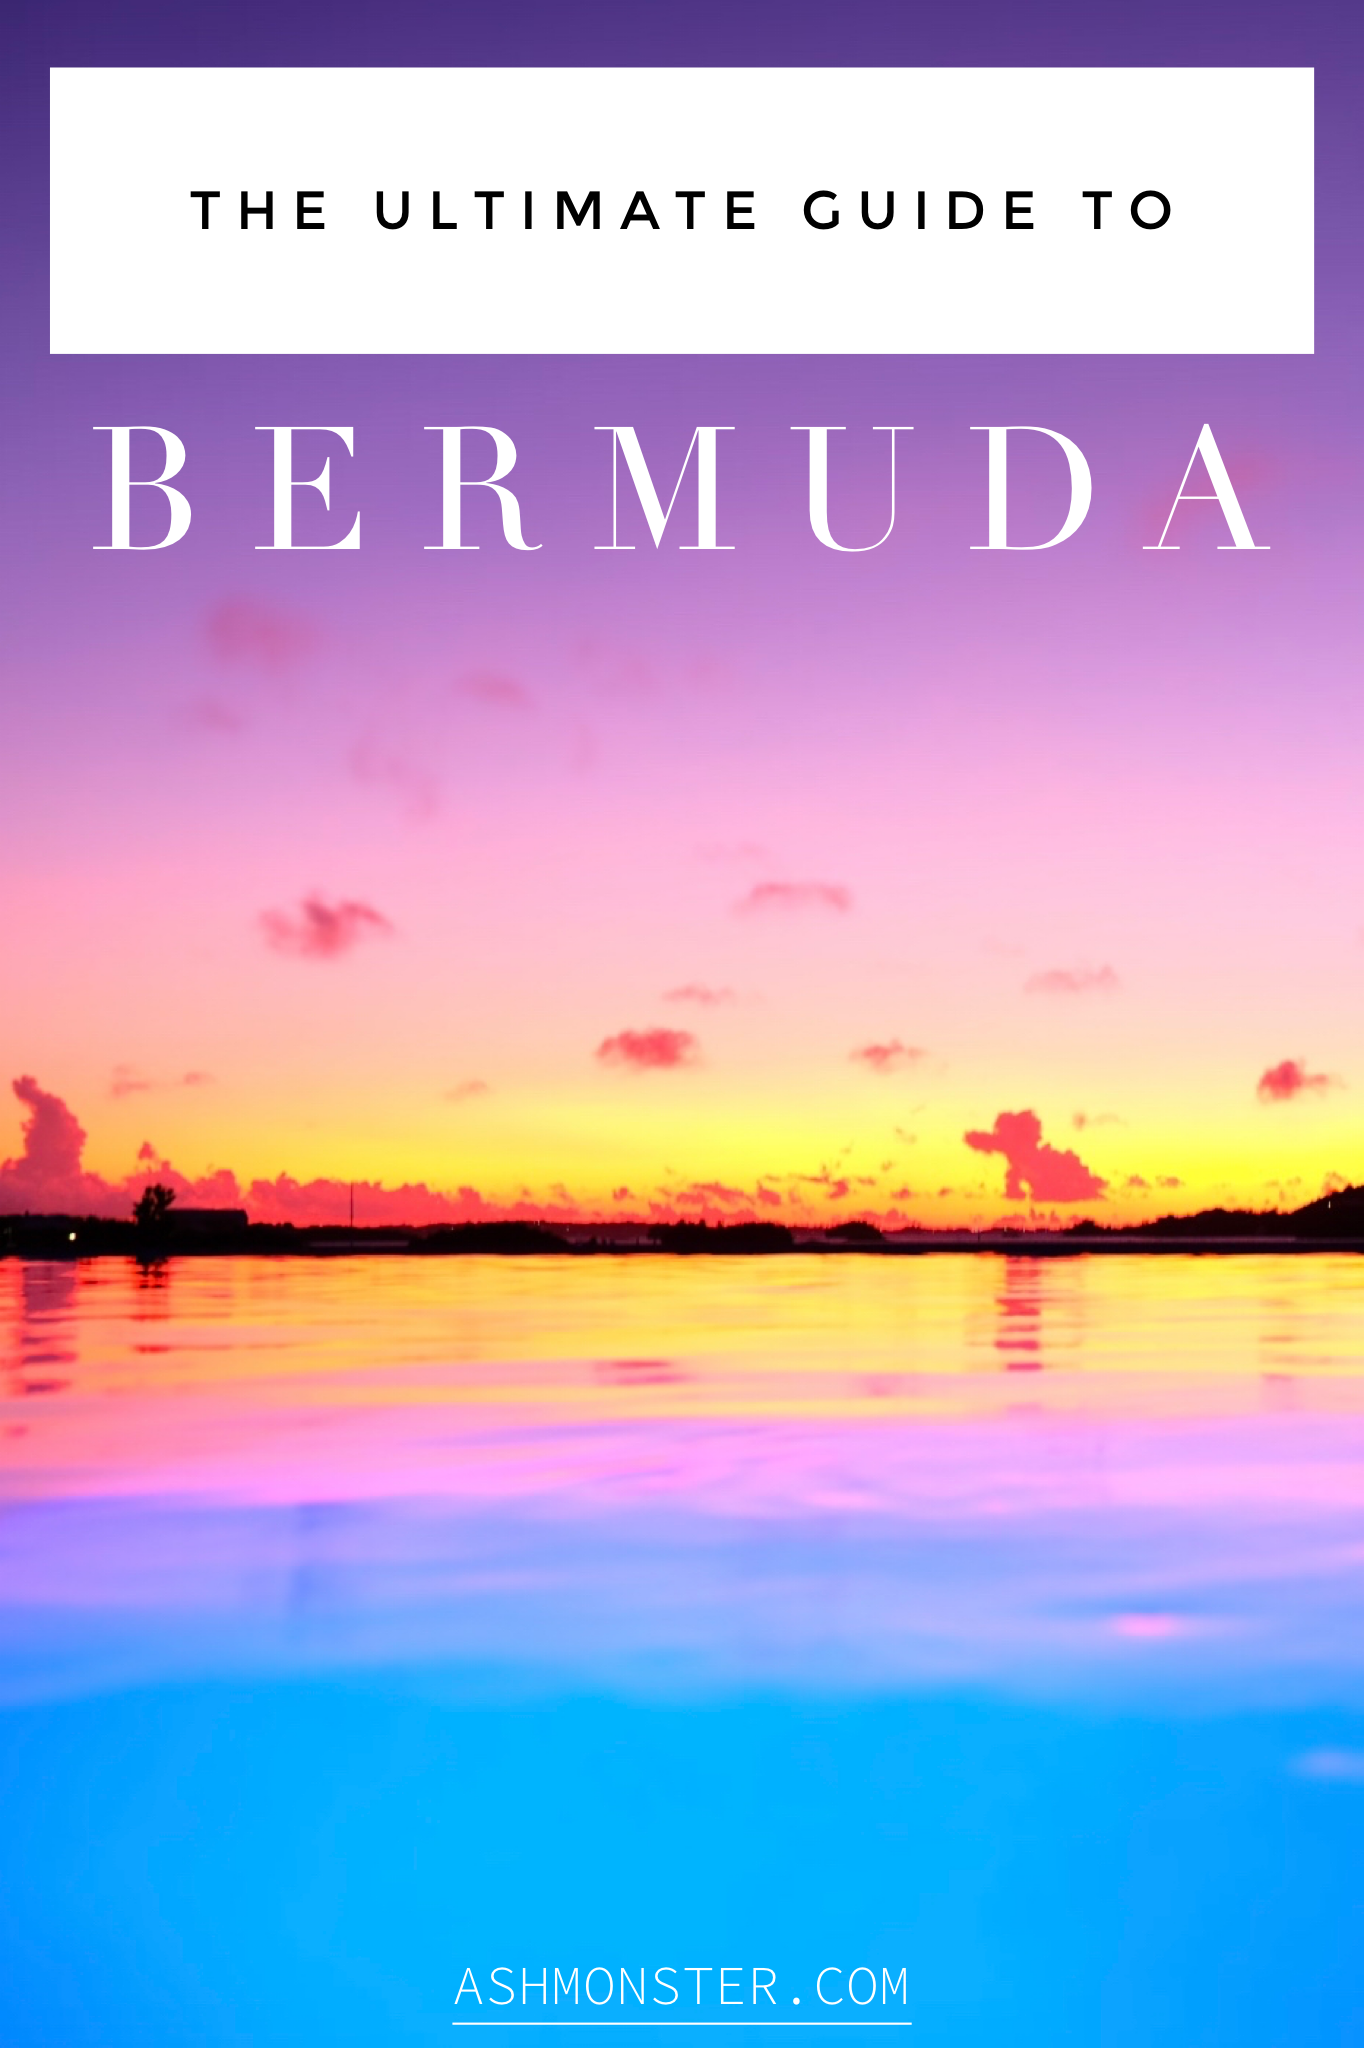 The Ultimate Guide To Bermuda from Ashmonster.com